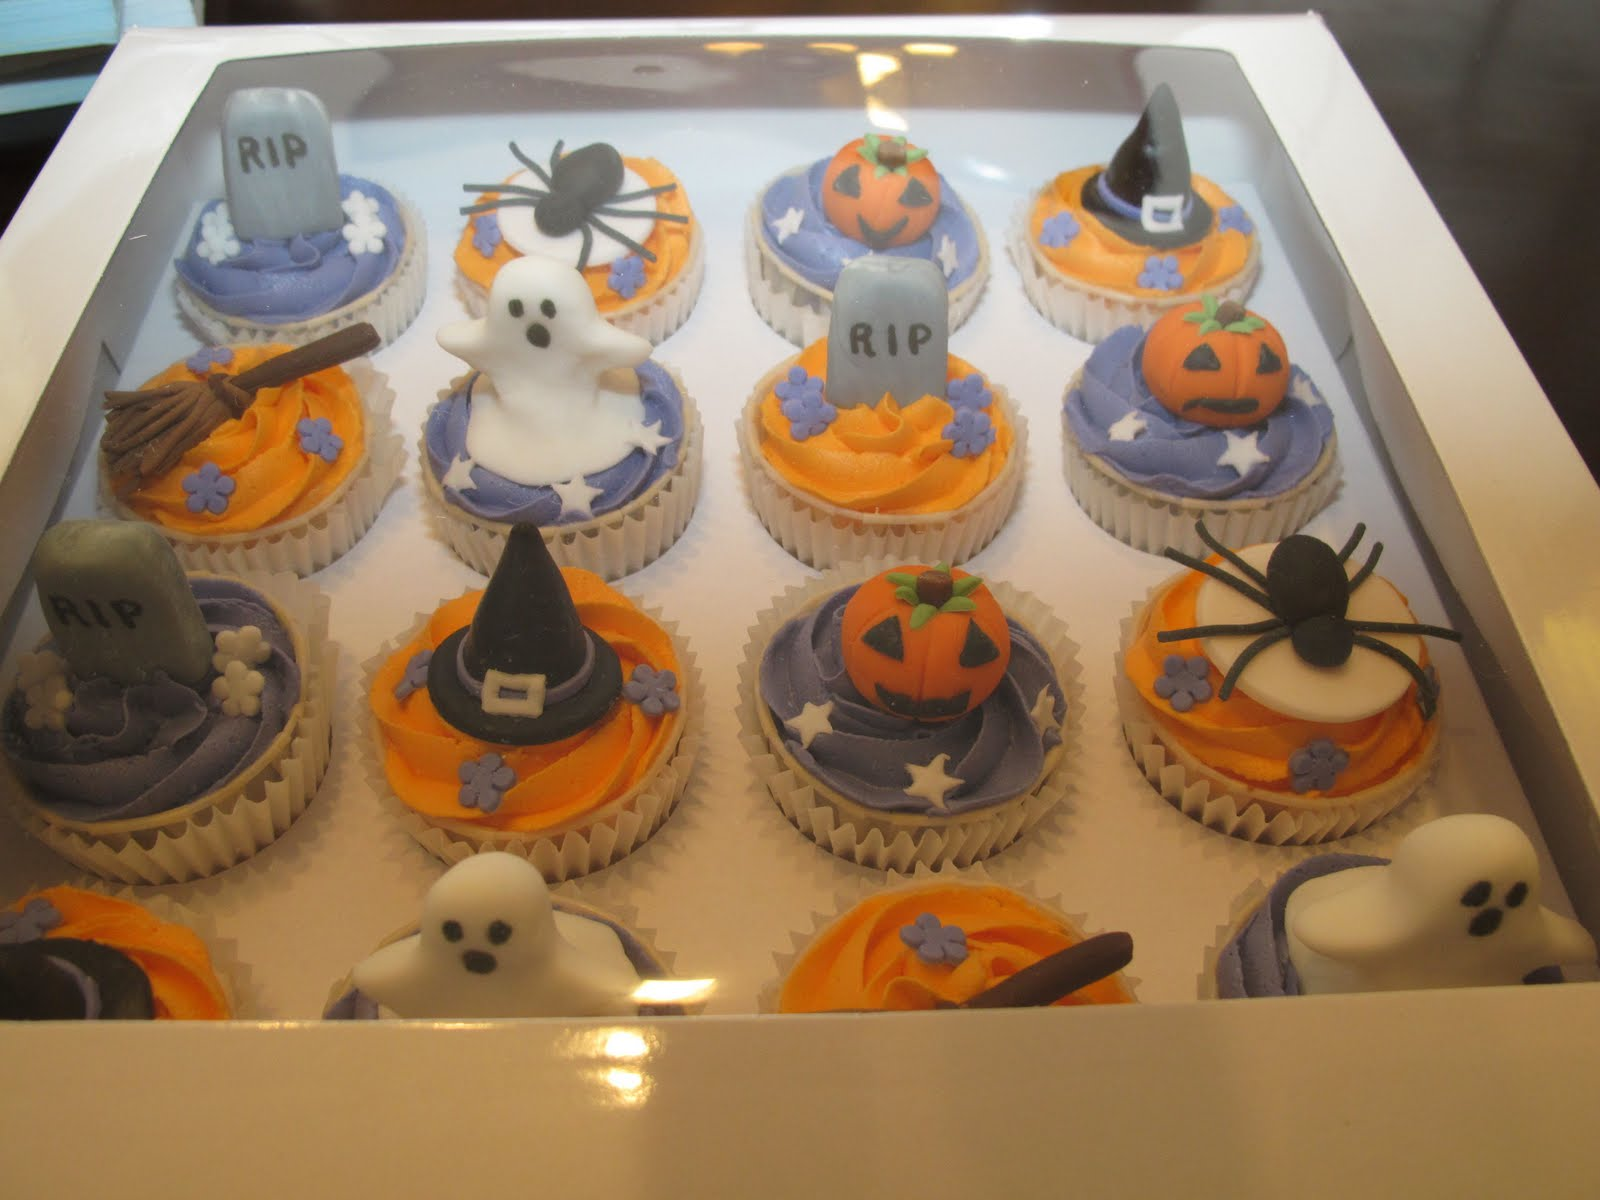 Halloween Cupcake Cake Decorating Ideas : Pink Oven Cakes and Cookies: Halloween cupcake ideas